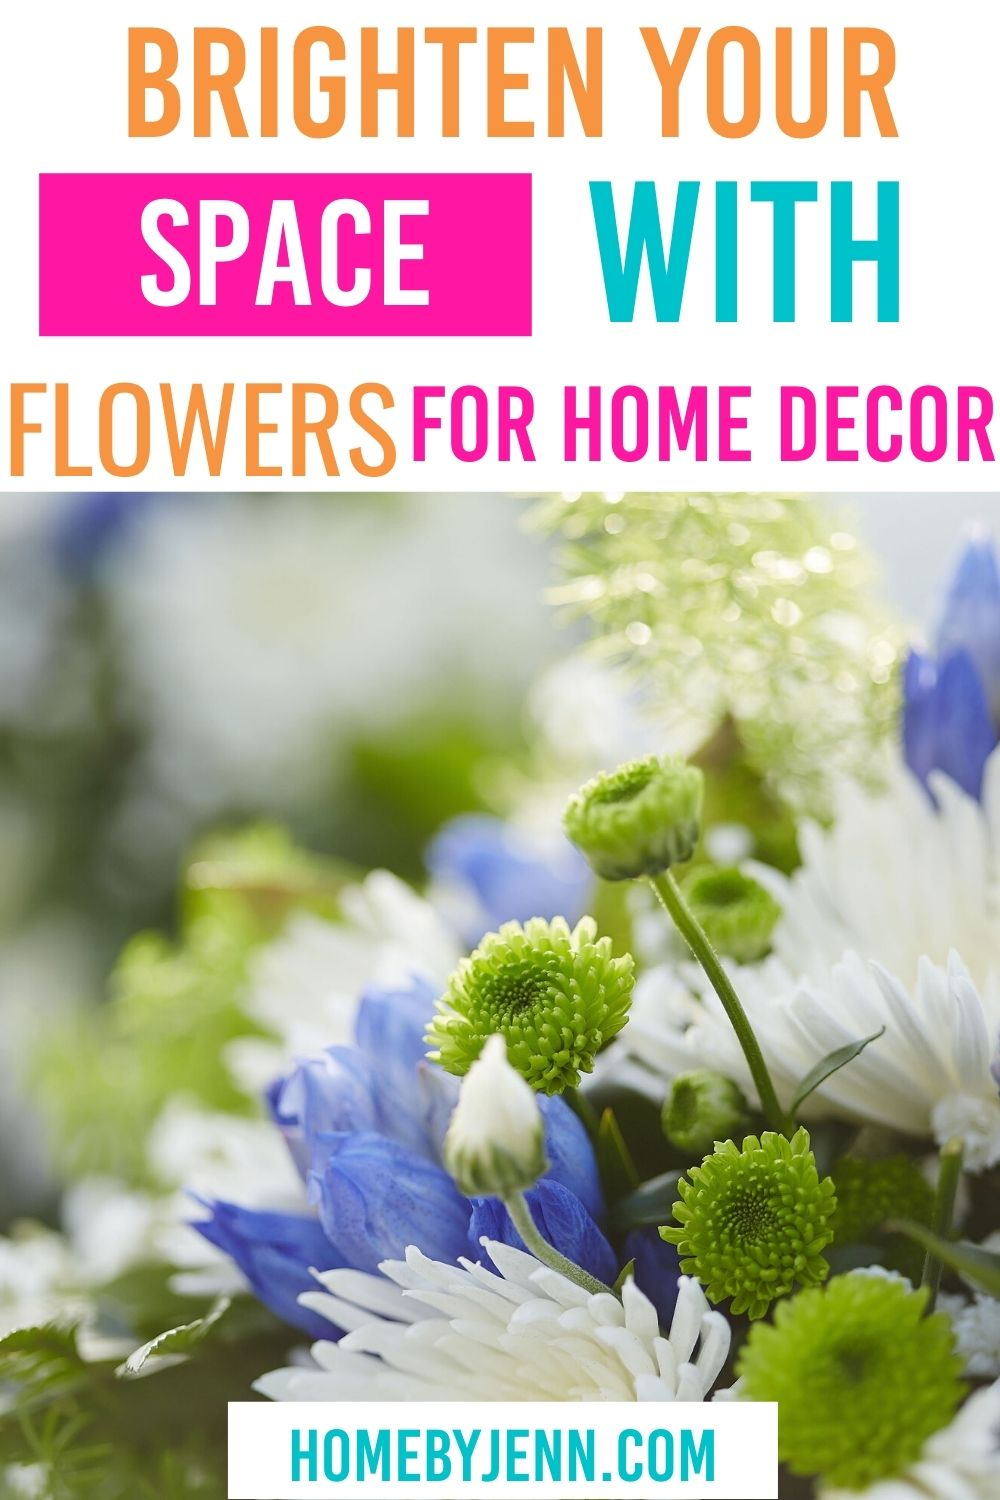 Brighten your home and enjoy some outdoors indoors with flowers for home decor. Adding flowers will add so much to any room. #homedecor #flowers #vaseofflowers via @homebyjenn